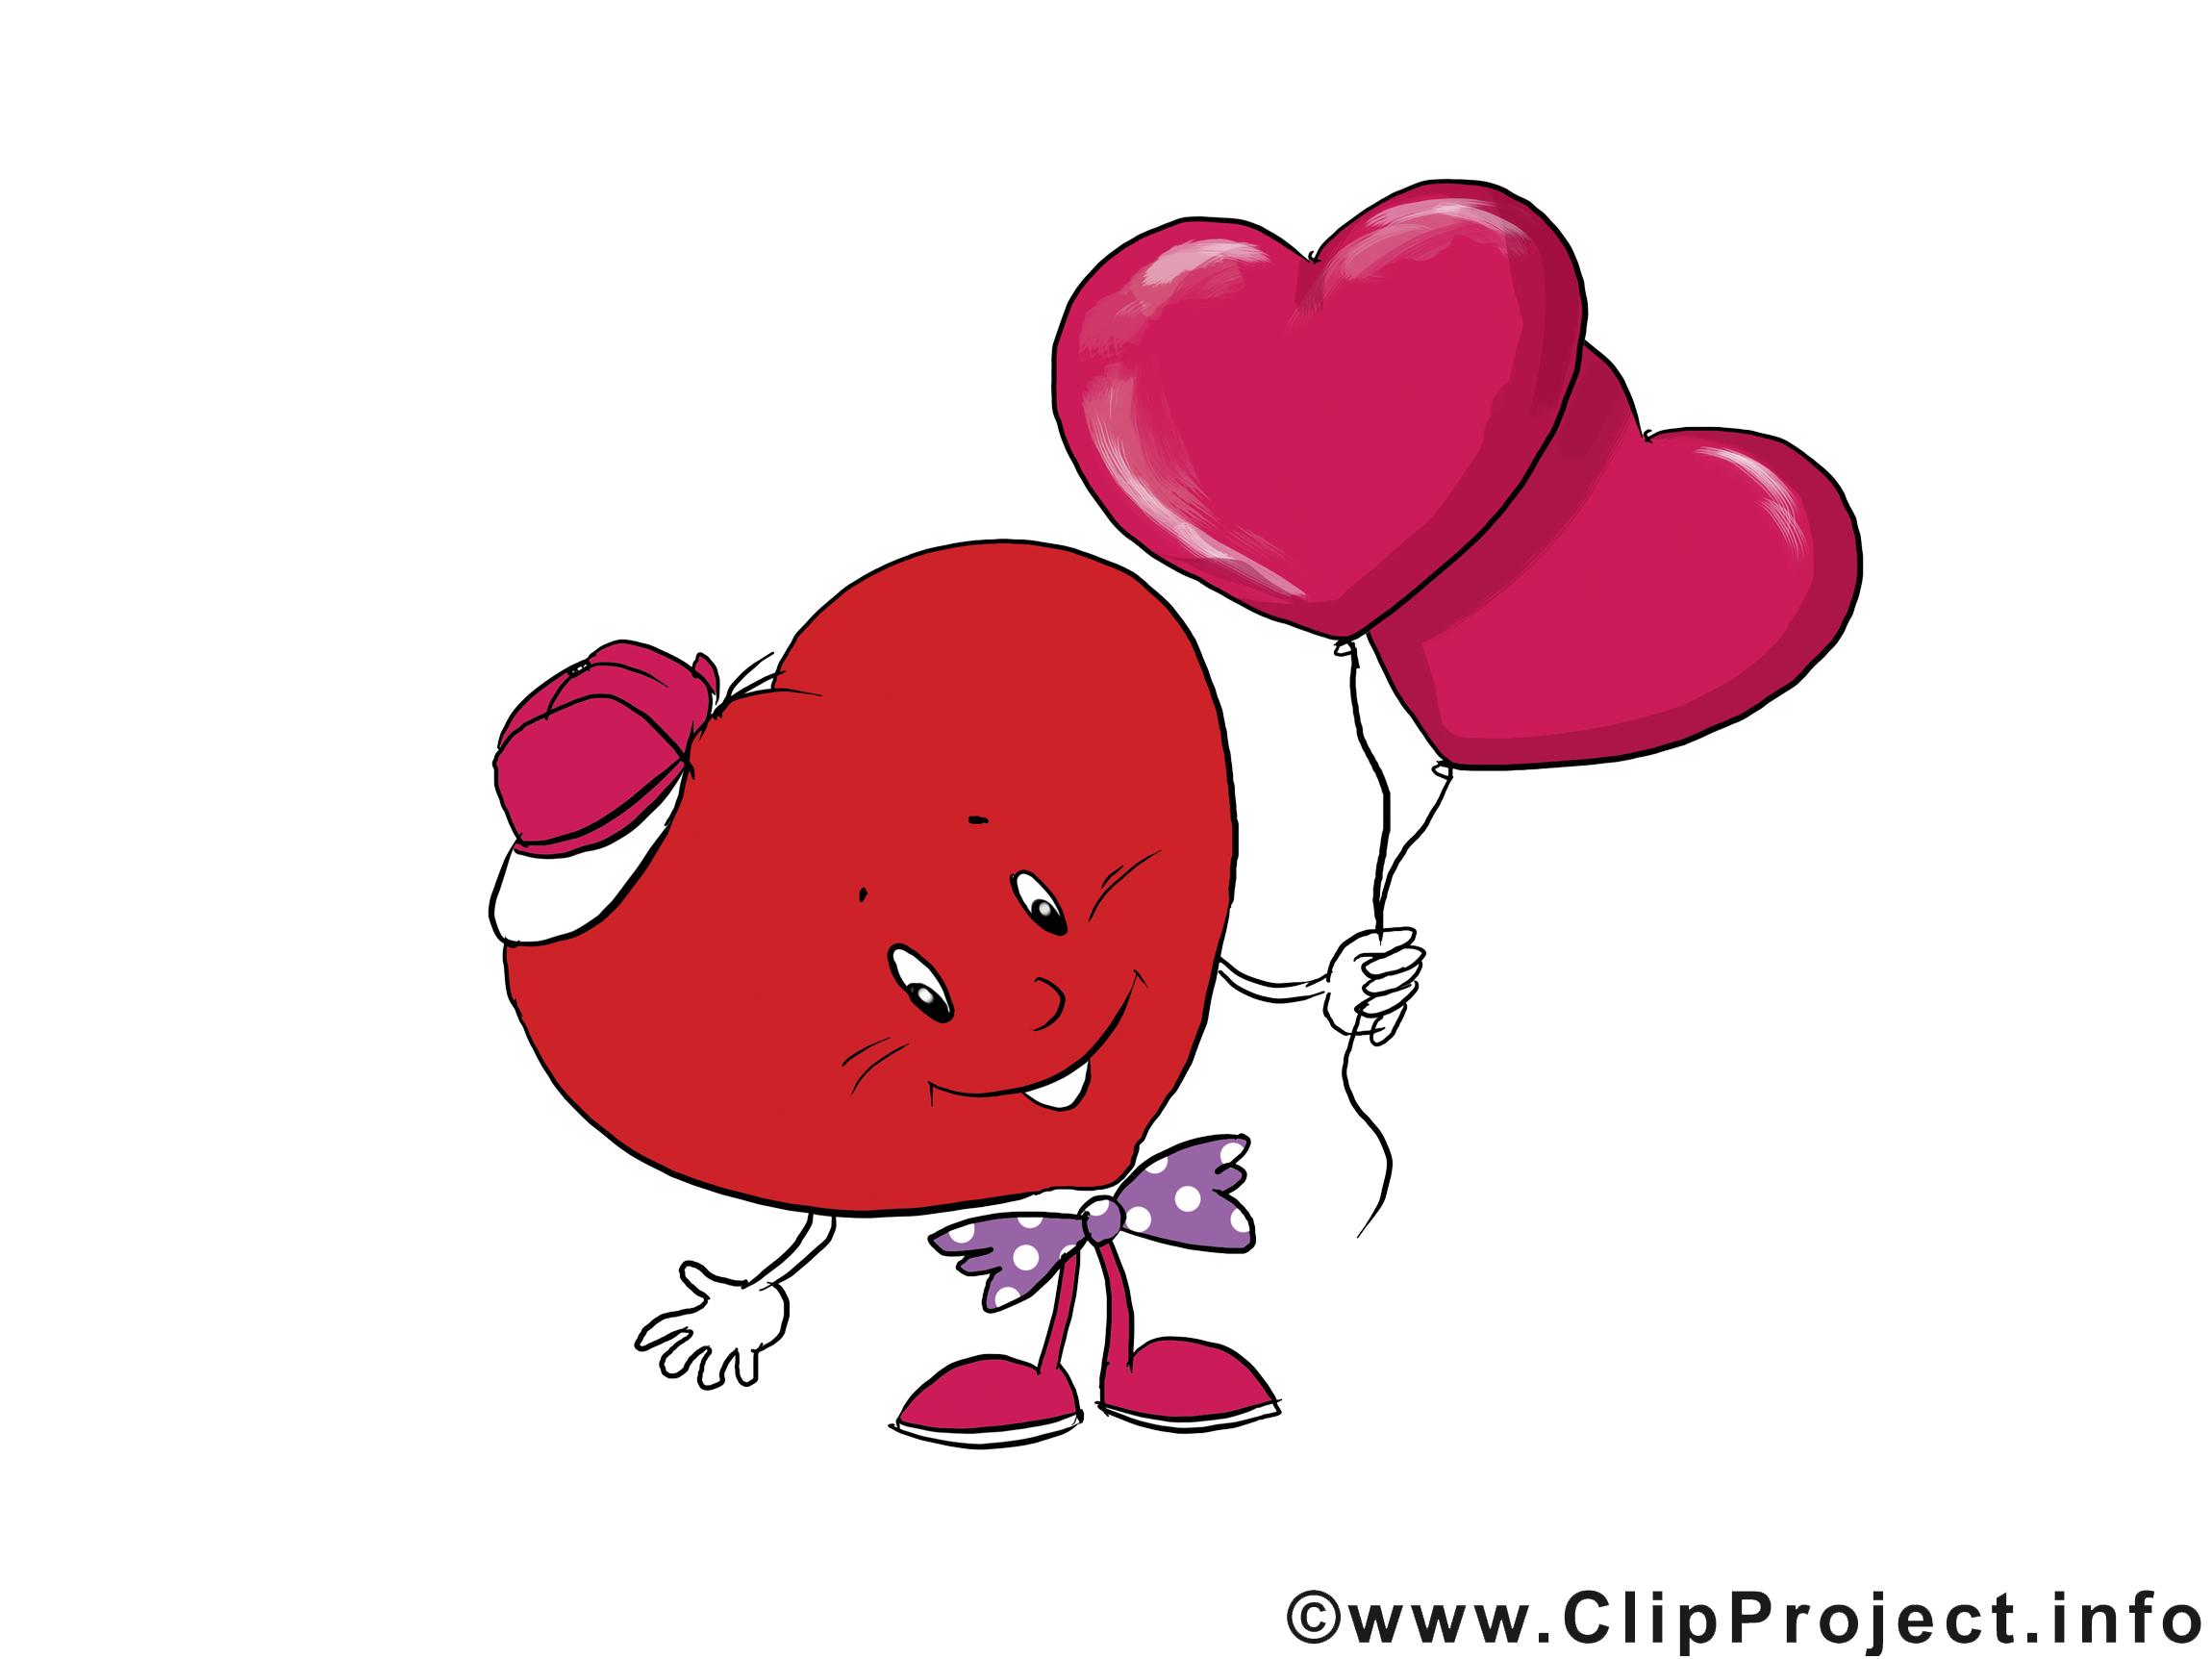 Ballons clip arts - Saint-Valentin illustrations